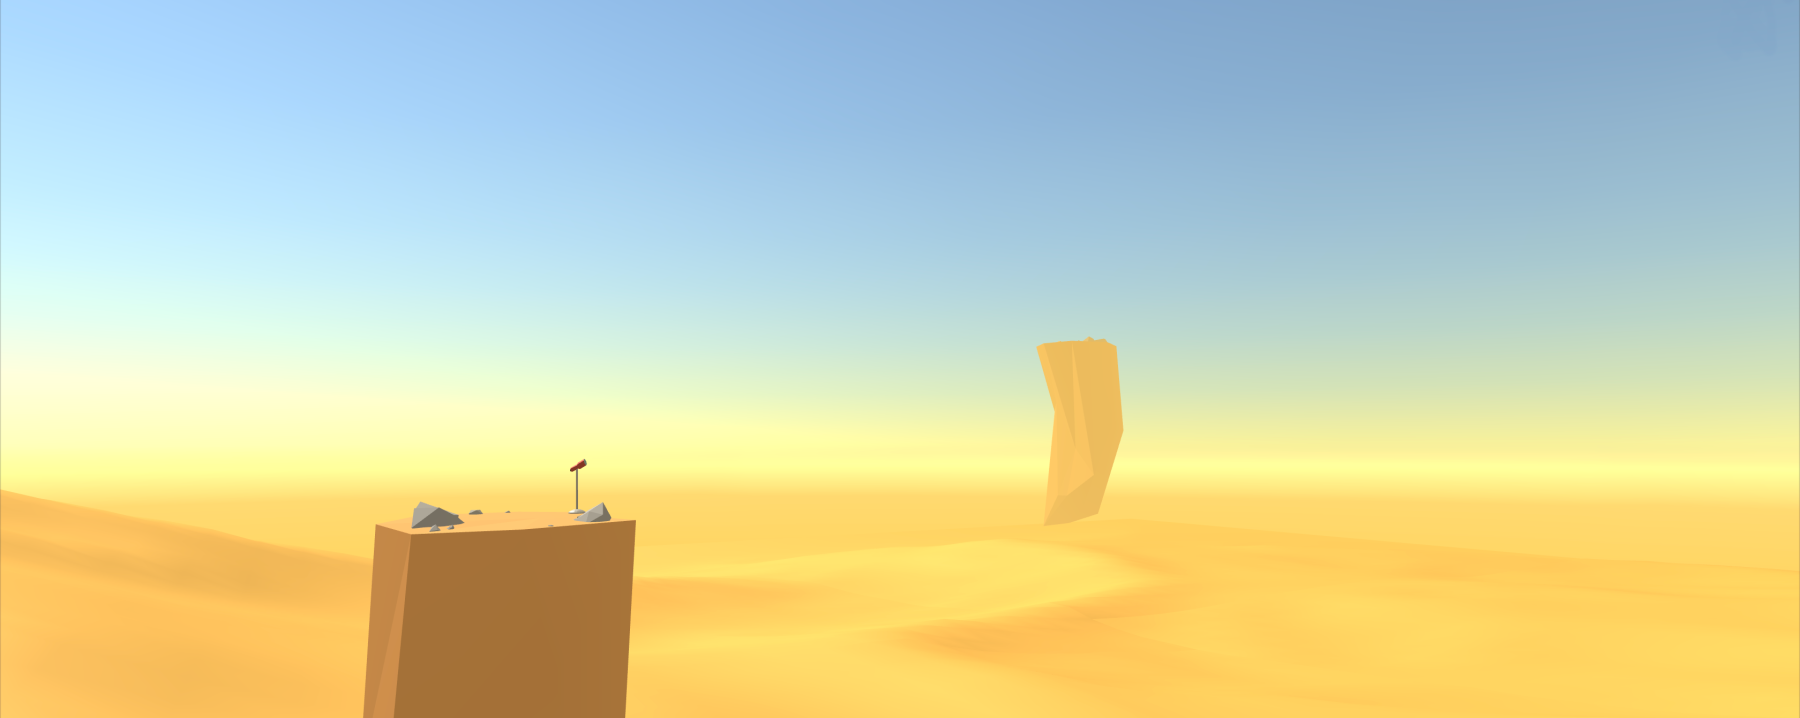 Daydream Ideation Experiment